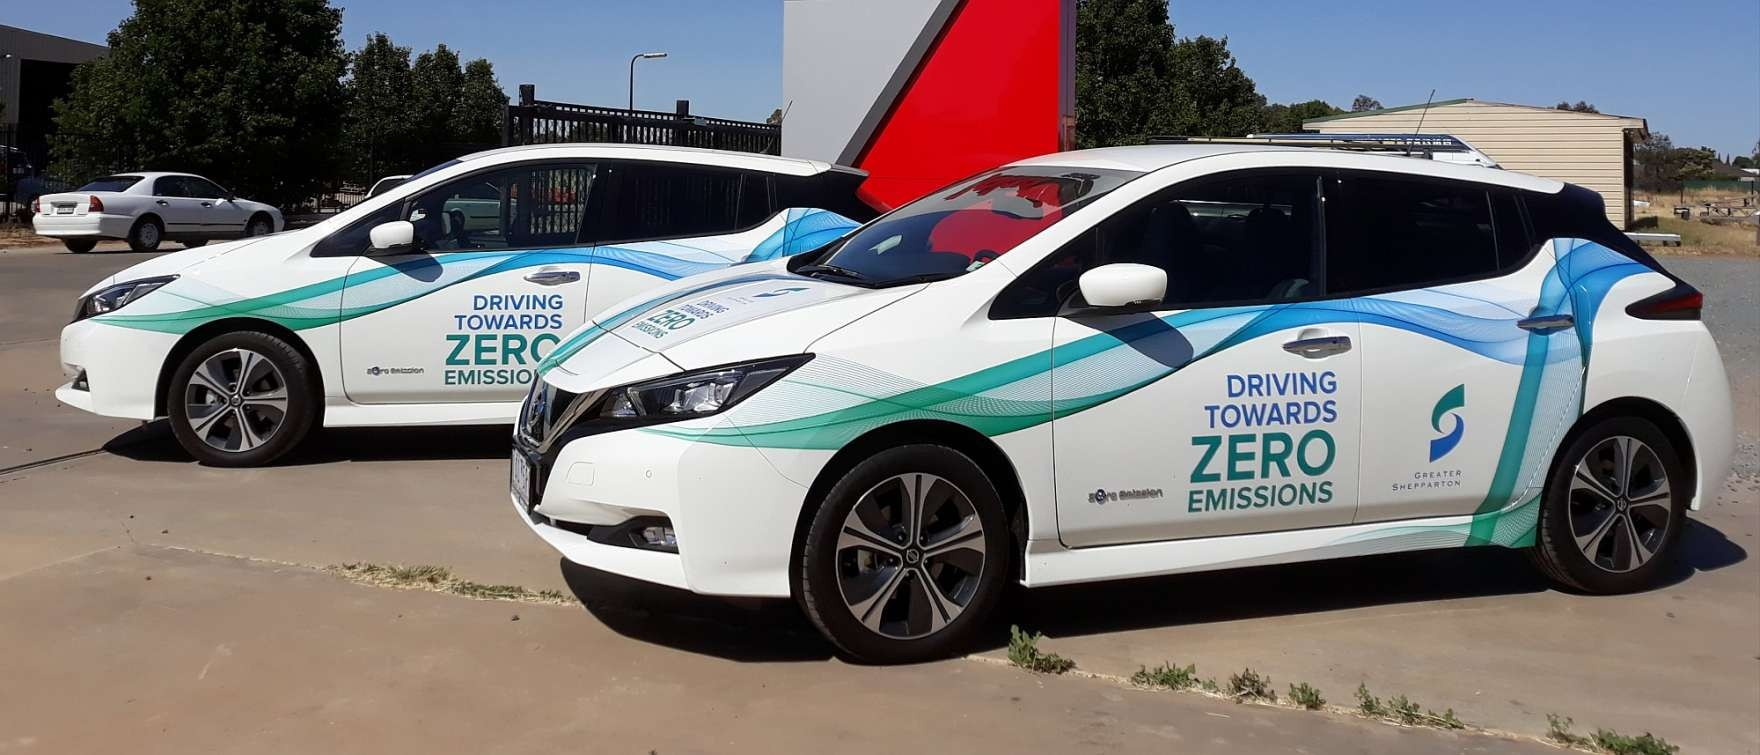 Council's two fully electric Nissan Leaf vehicles aim to reduce our greenhouse gas emissions and pollution.